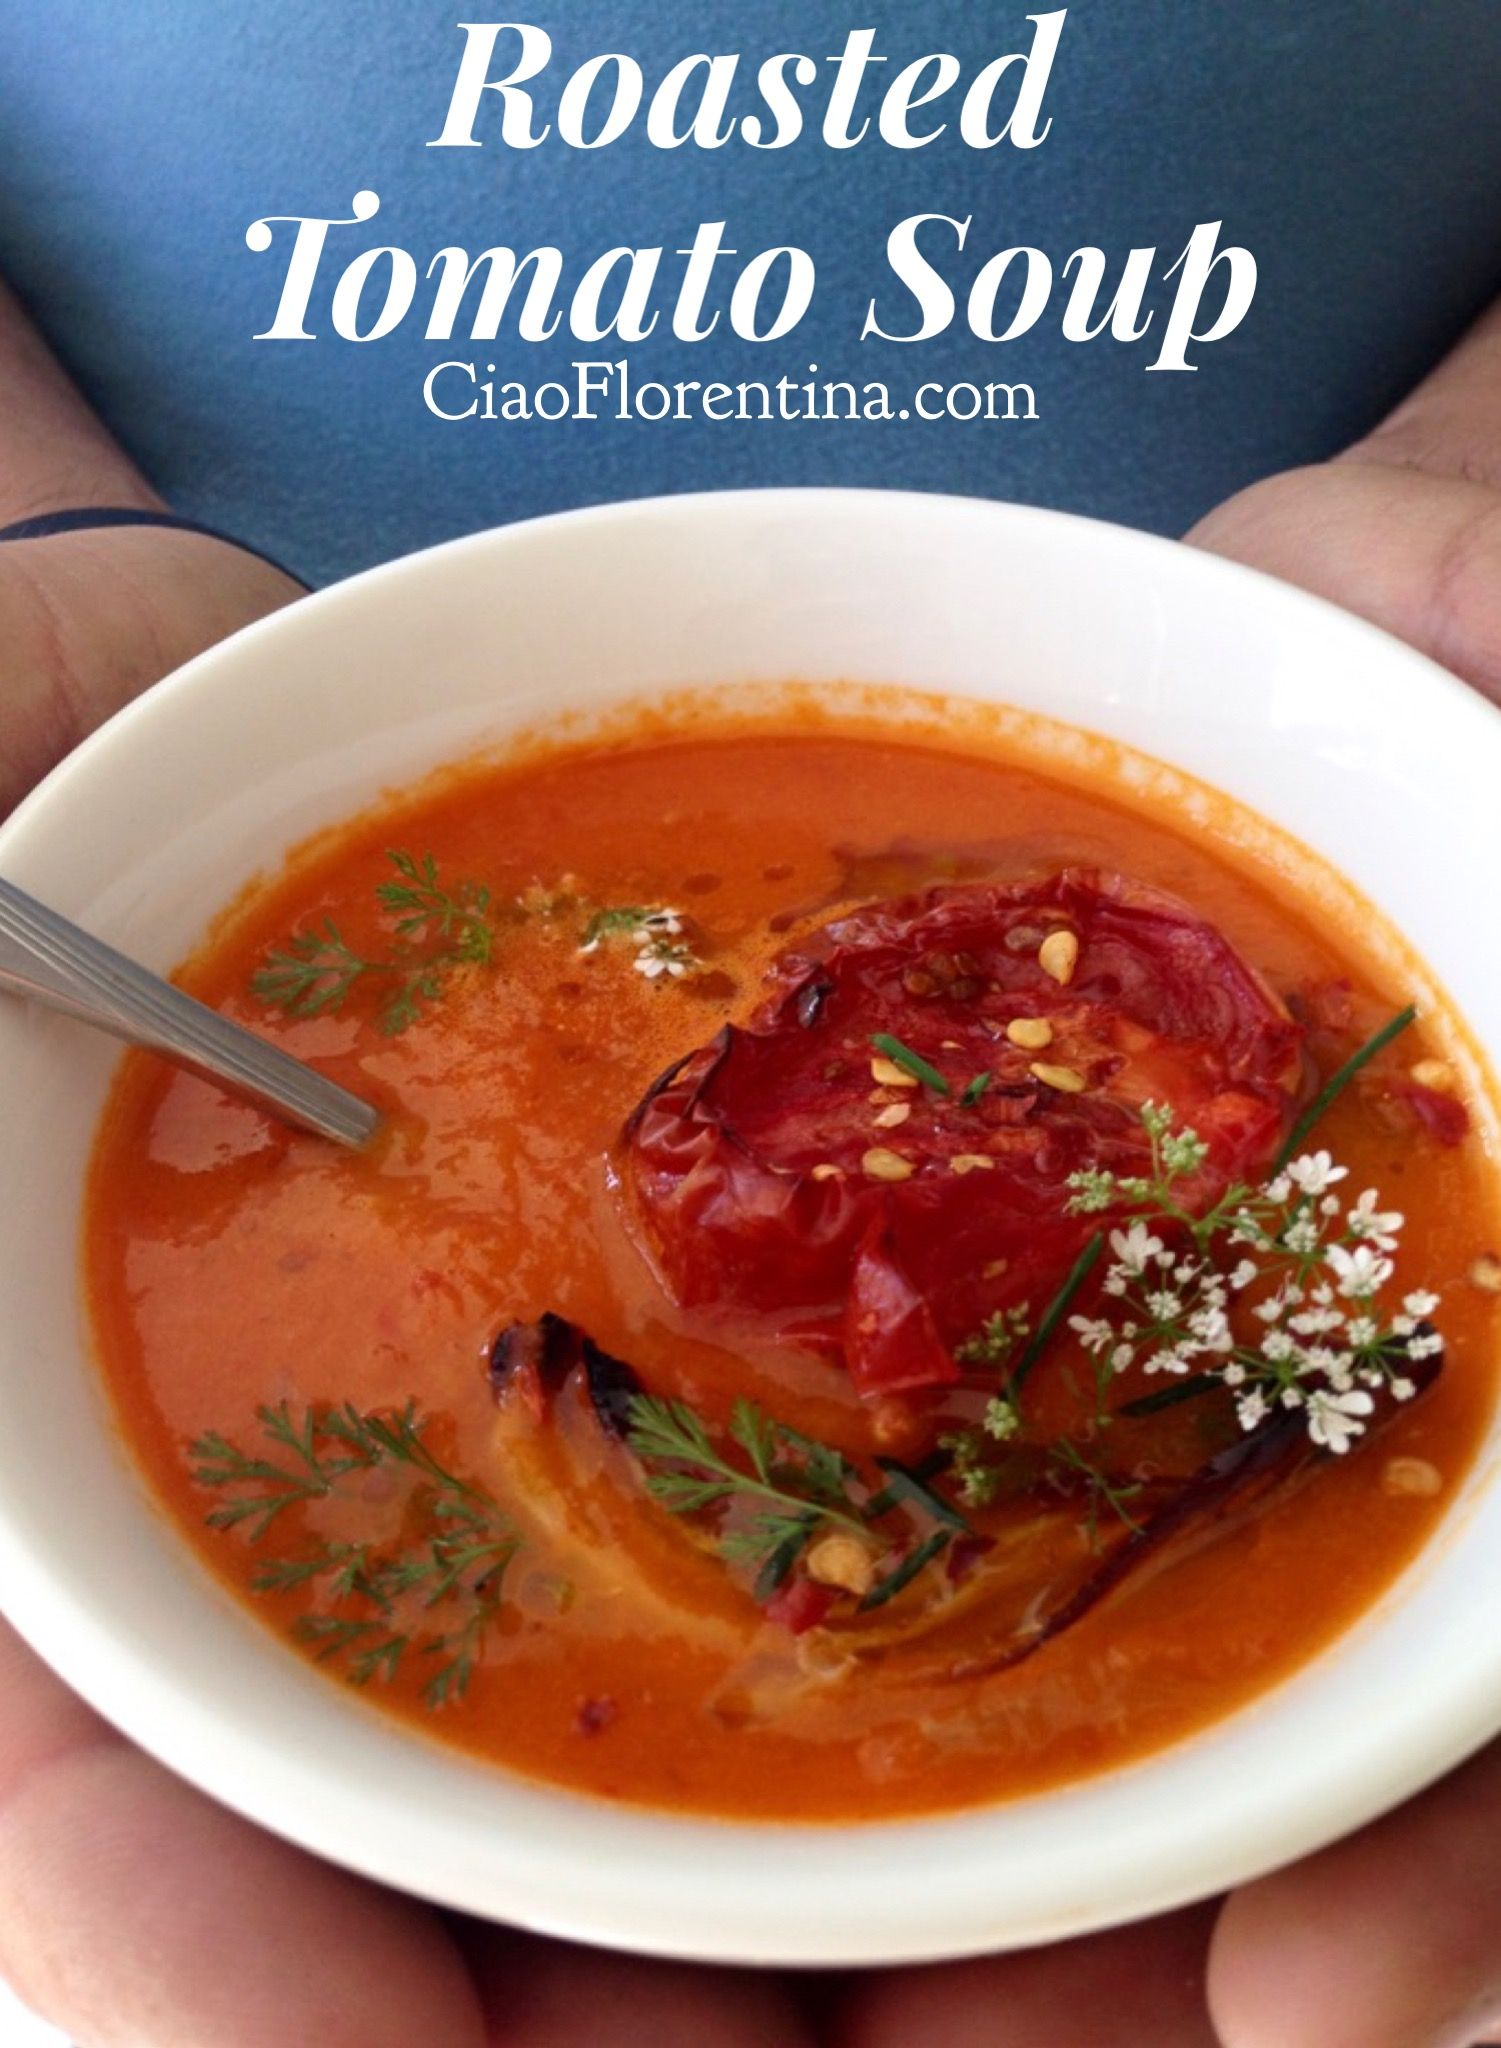 Roasted Tomato Soup Recipe Ciaoflorentina Recipe Tomato Soup Recipes Roast Tomato Soup Recipe Roasted Tomato Soup